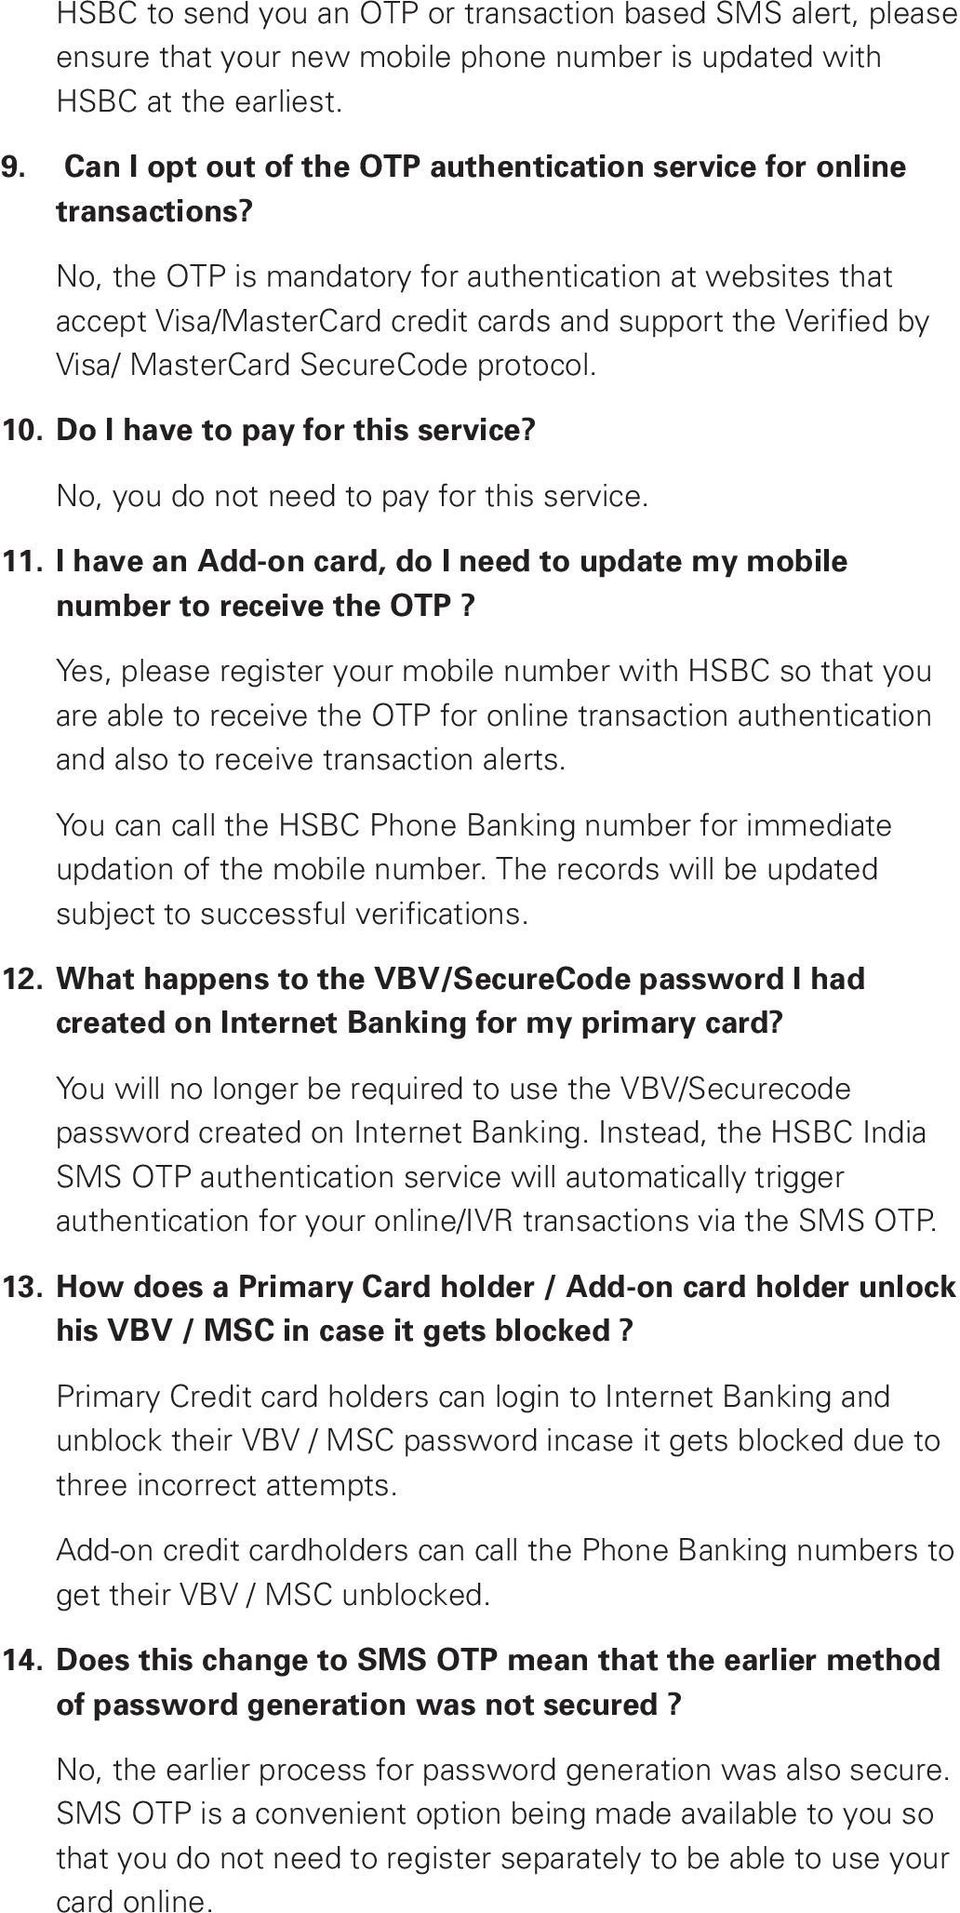 Frequently Asked Questions (FAQ) on HSBC Chip Credit Cards - PDF